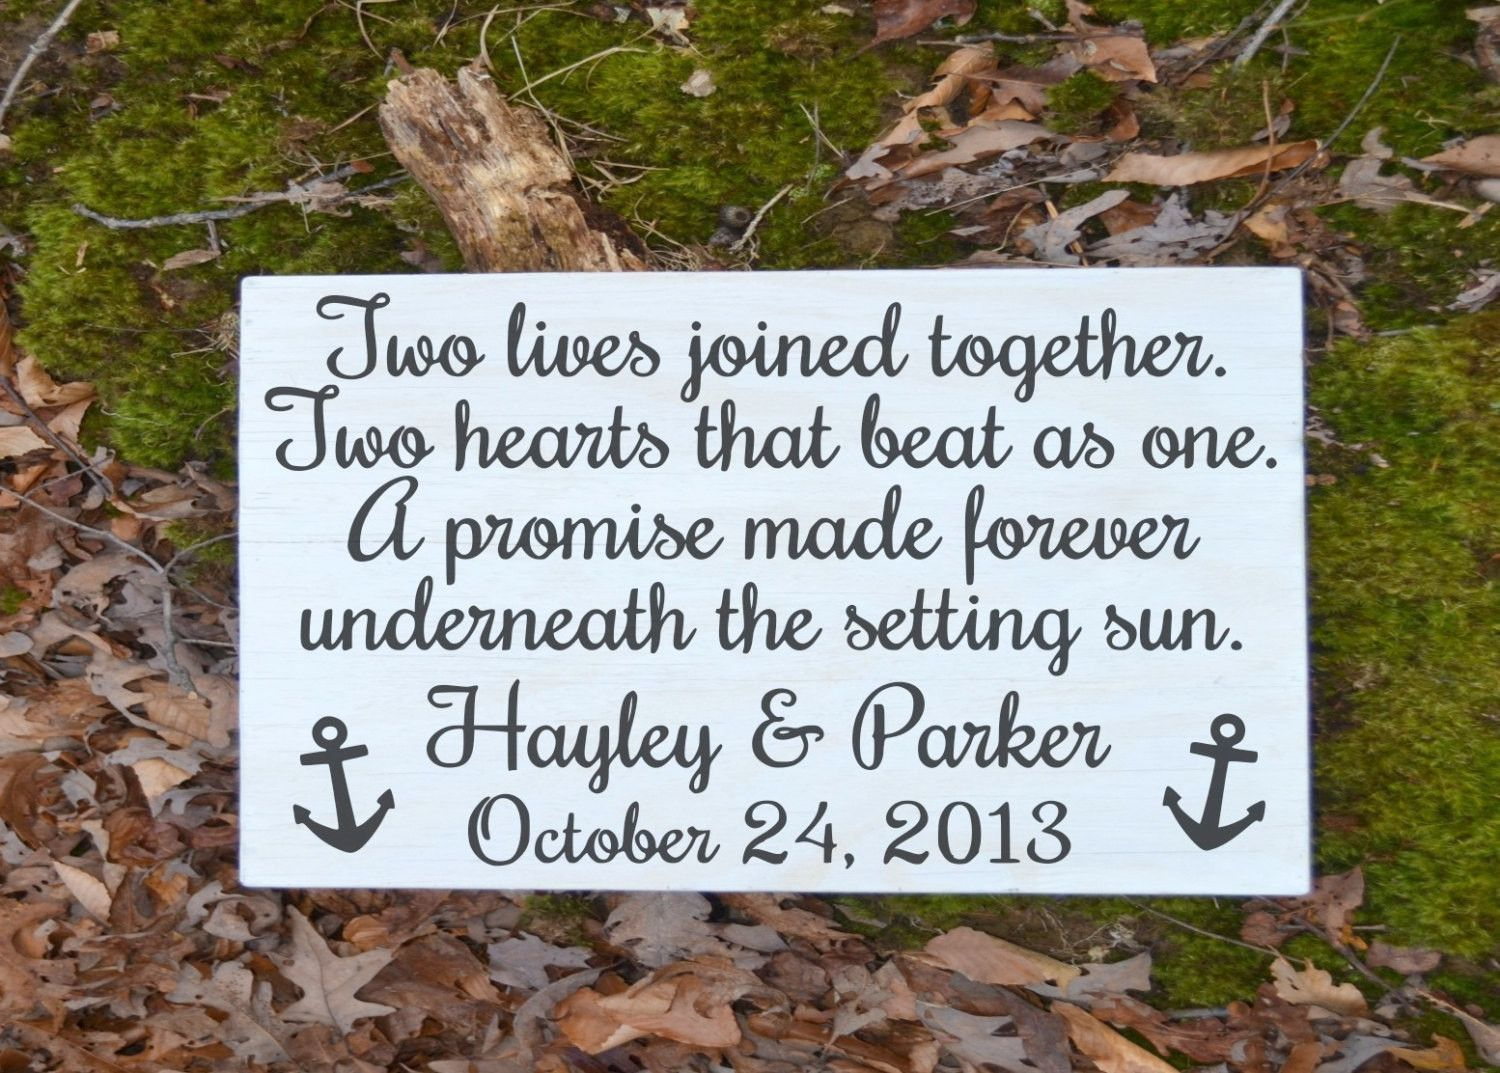 ideas for beach wedding party favors%0A Beach Wedding Sign Personalized Gift Unique Sunset Water Lake Nautical  Anchor Weddings Decor Original Sand Ceremony Reception Decorations  The  Sign Shoppe